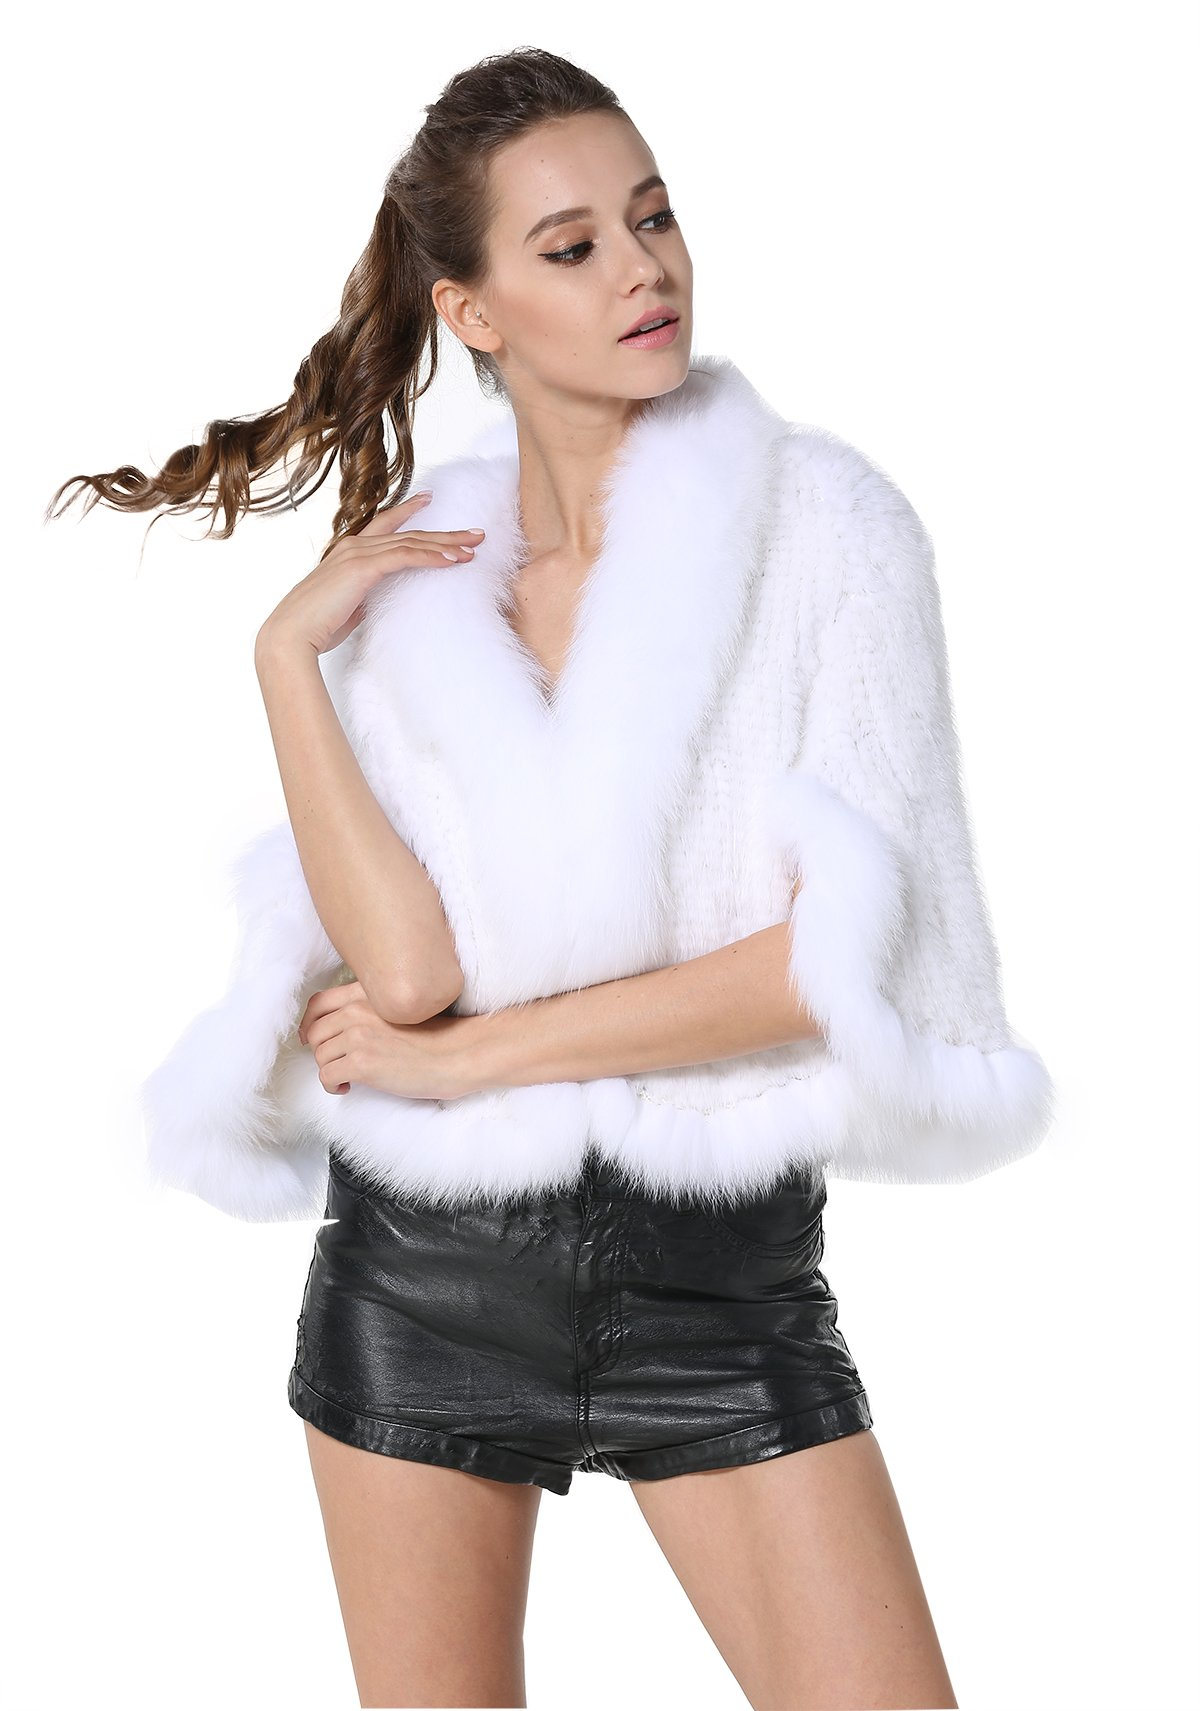 MEEFUR Women's Natural Mink Fur Knitted Cappa Cloak Cape with Fox Fur Collar (White)